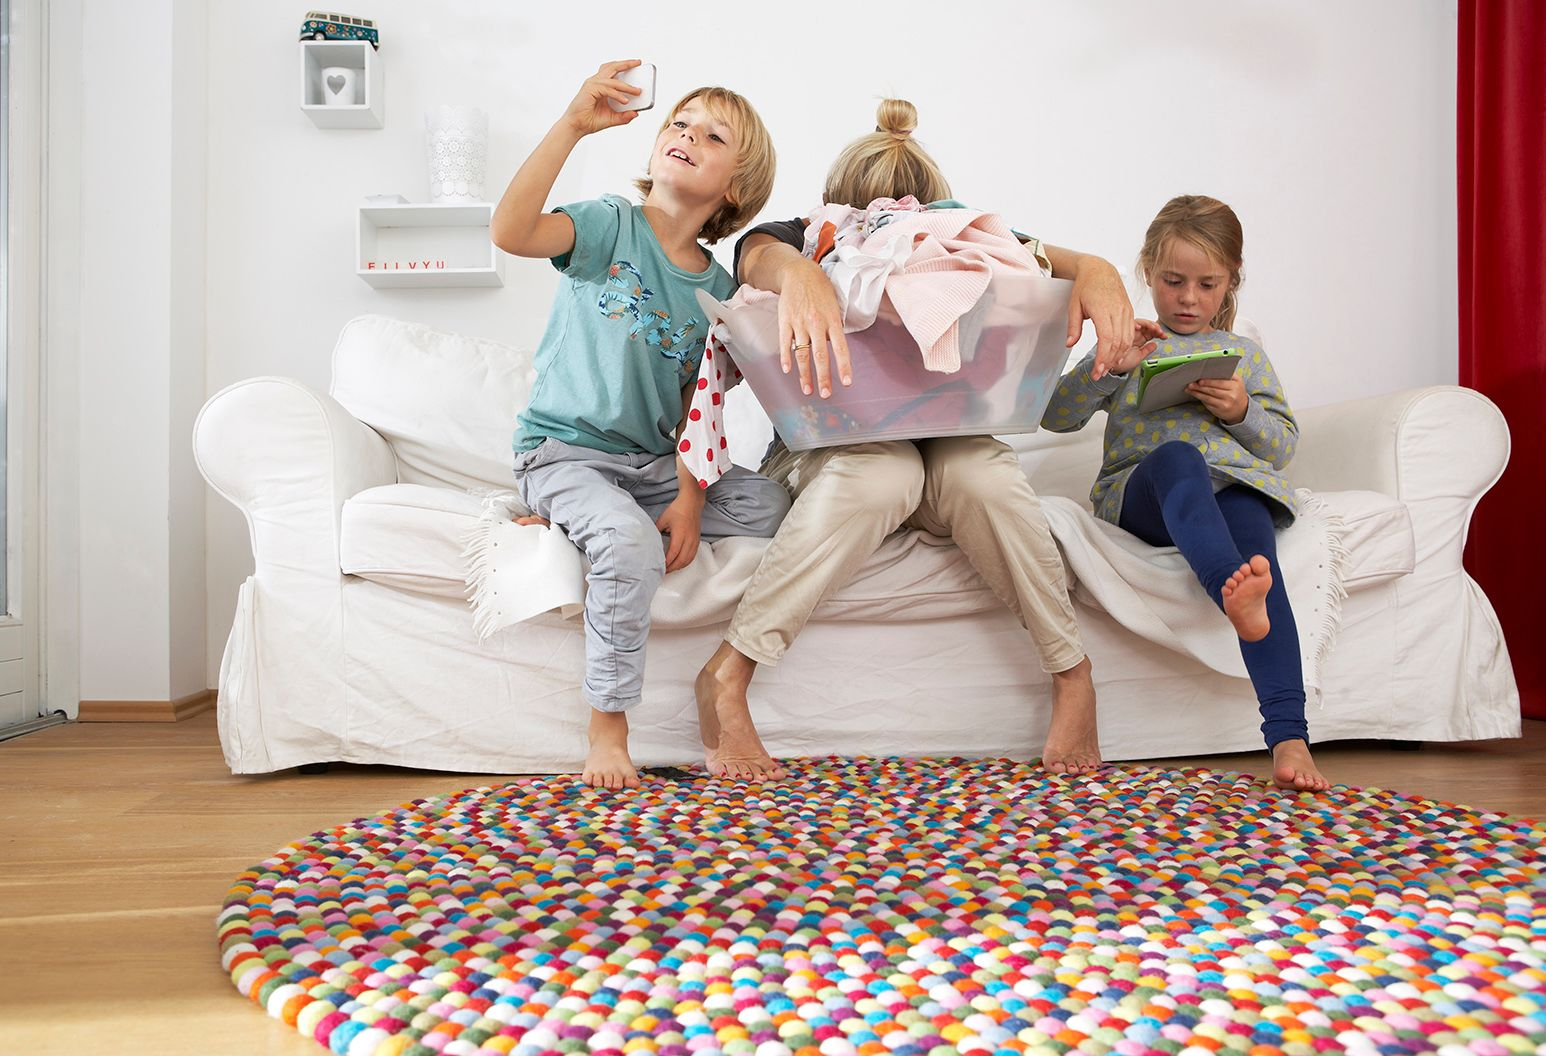 An exhausted mother hangs her head and holds a laundry basket. She sits on a white couch with her children who are using digital tablets and cell phones. A multi-colored rug sits on the floor in front of them.